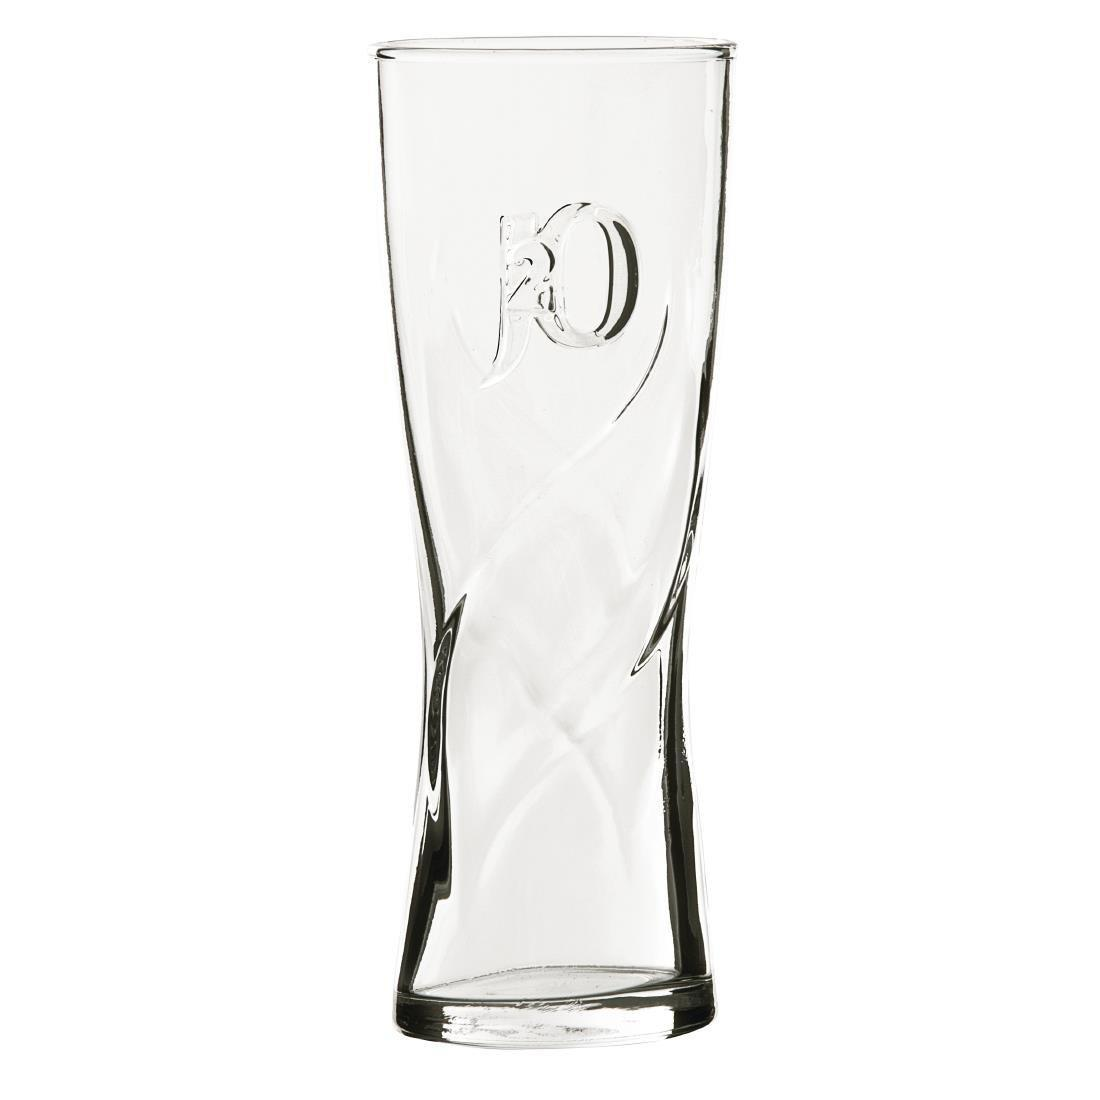 J20 Glass - 12oz (Box 24) - GG883